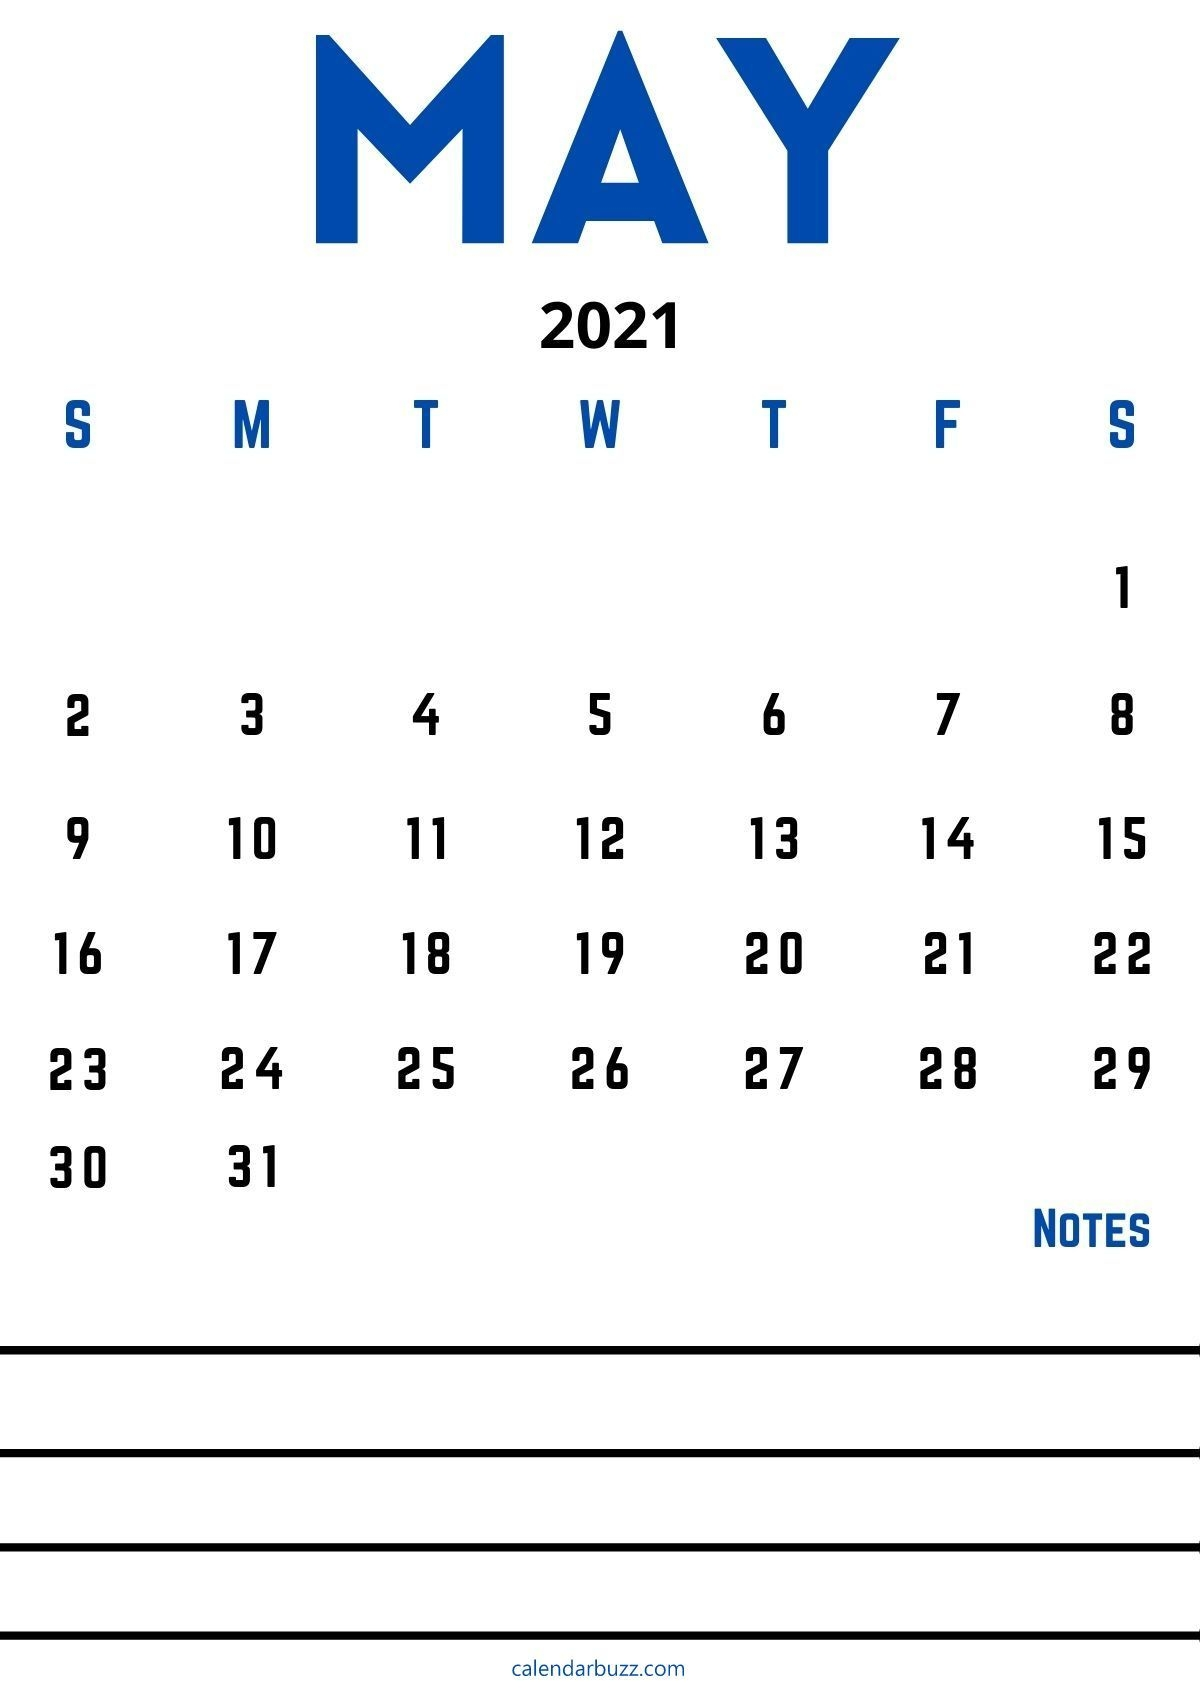 may 2021 calendar with space for notes free download